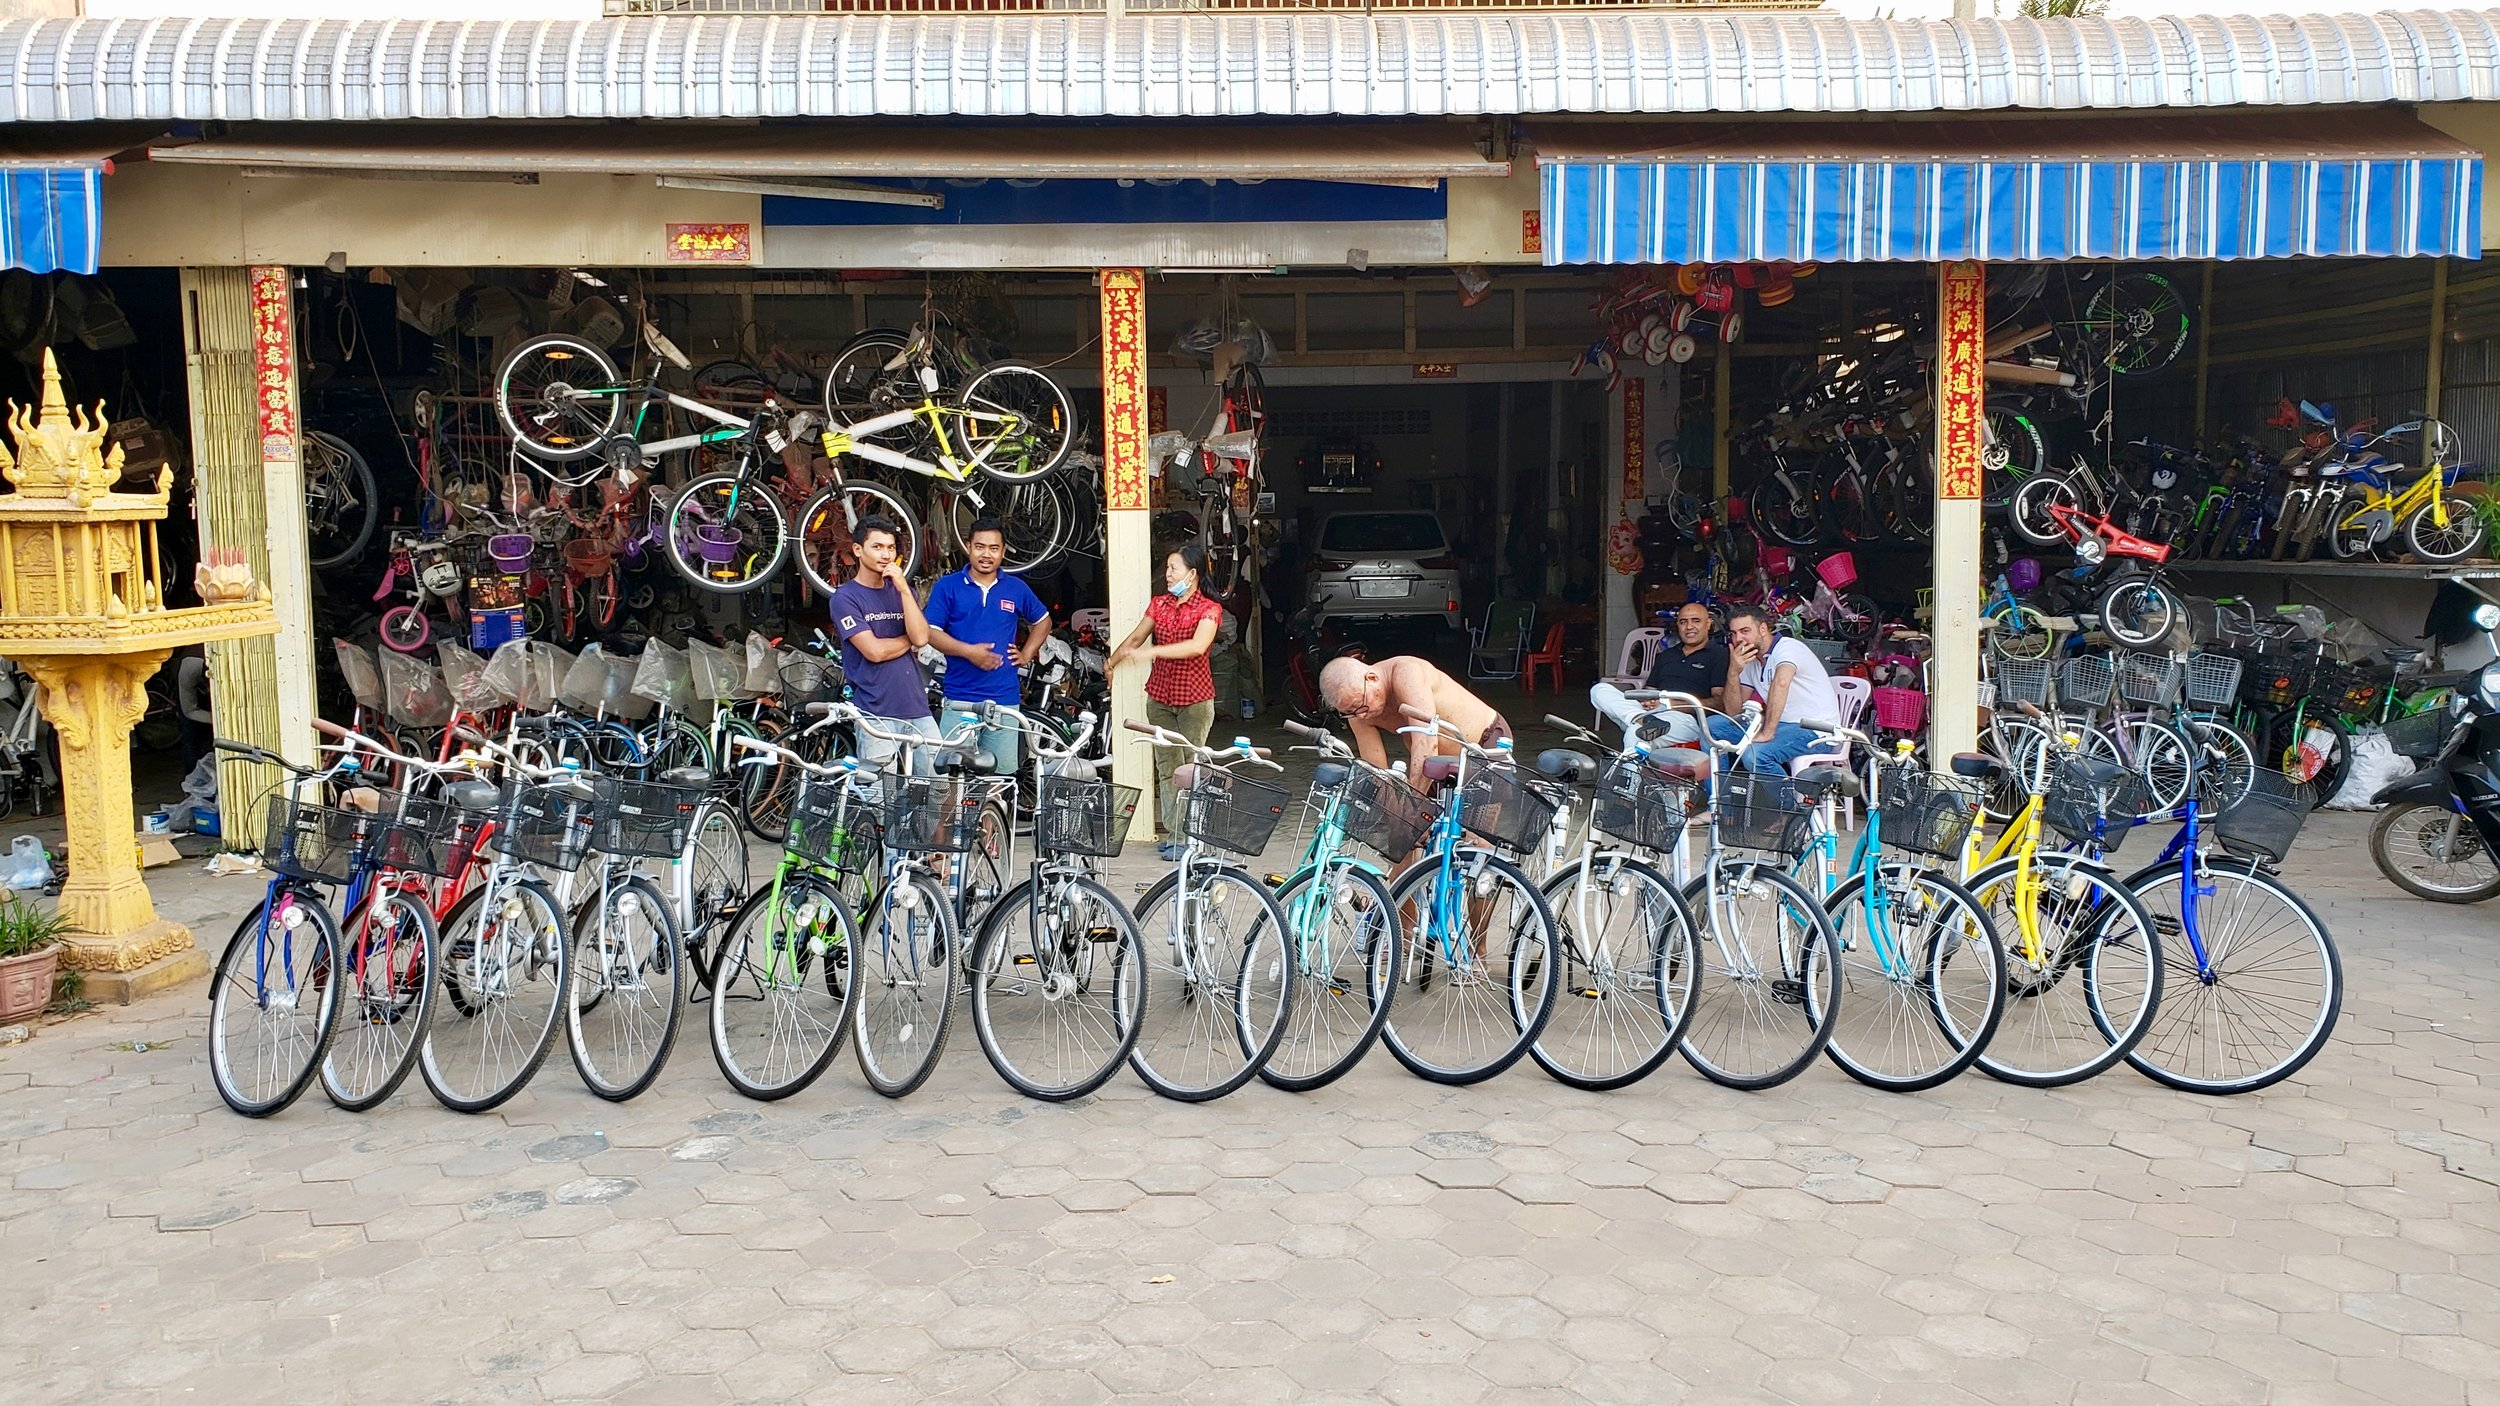 15 Bicycles to Deprived Rural Students